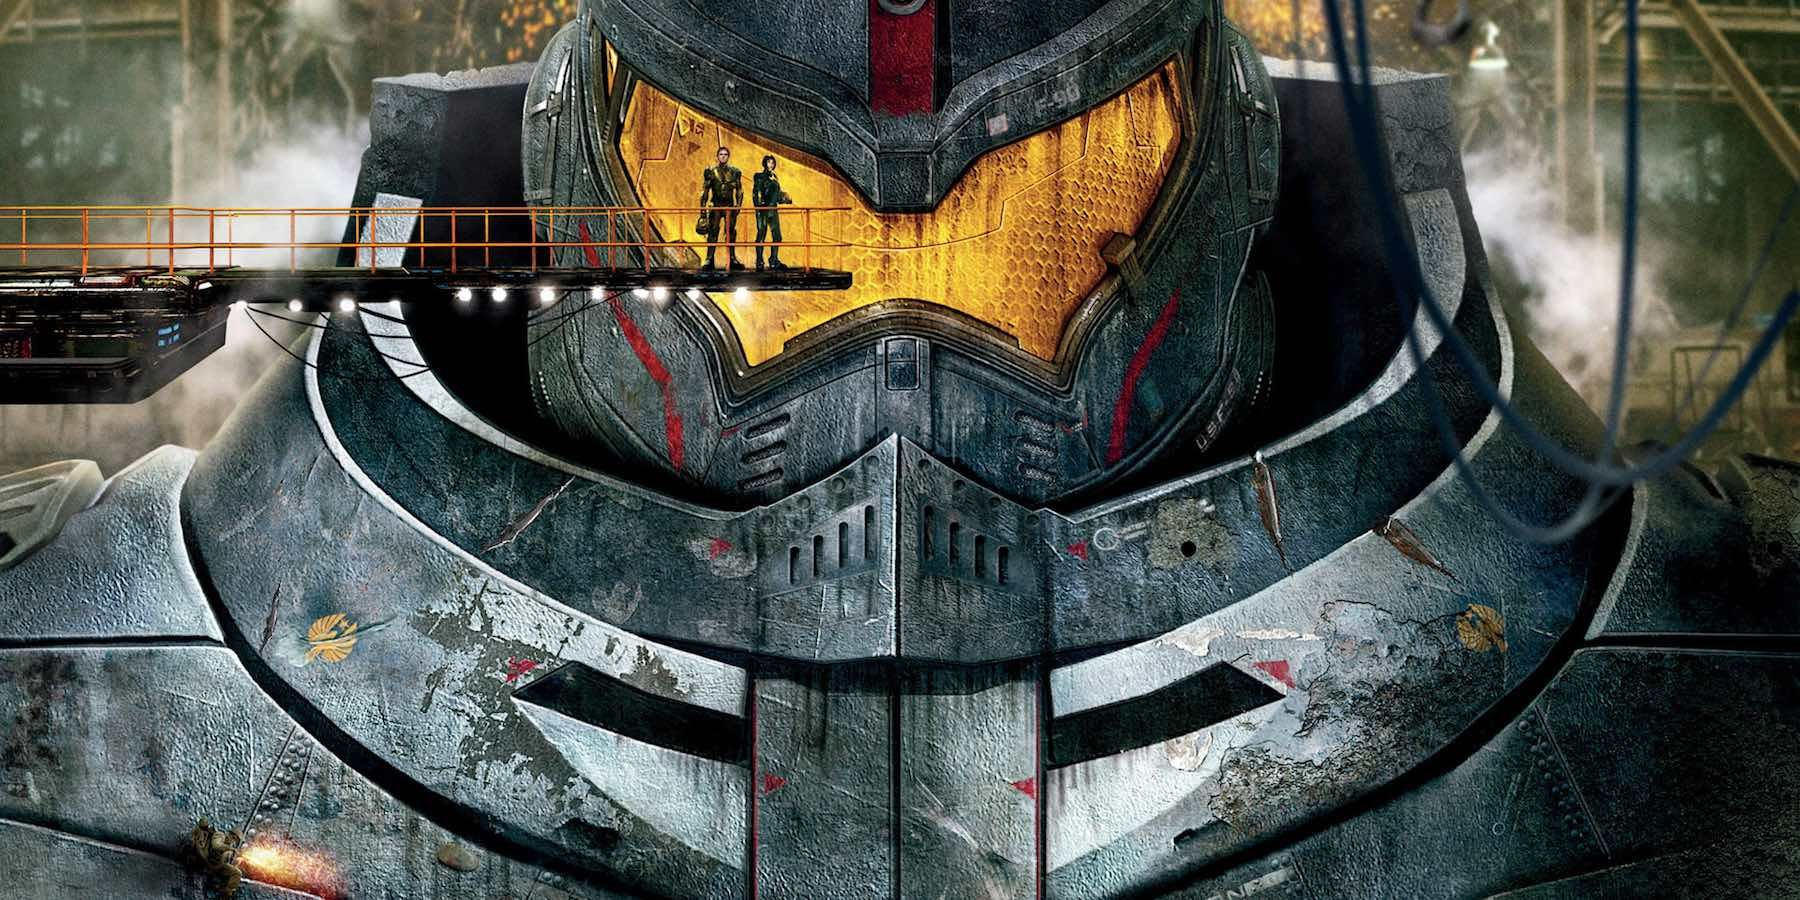 Pacific Rim 2: New Gipsy Avenger Jaeger Design Revealed